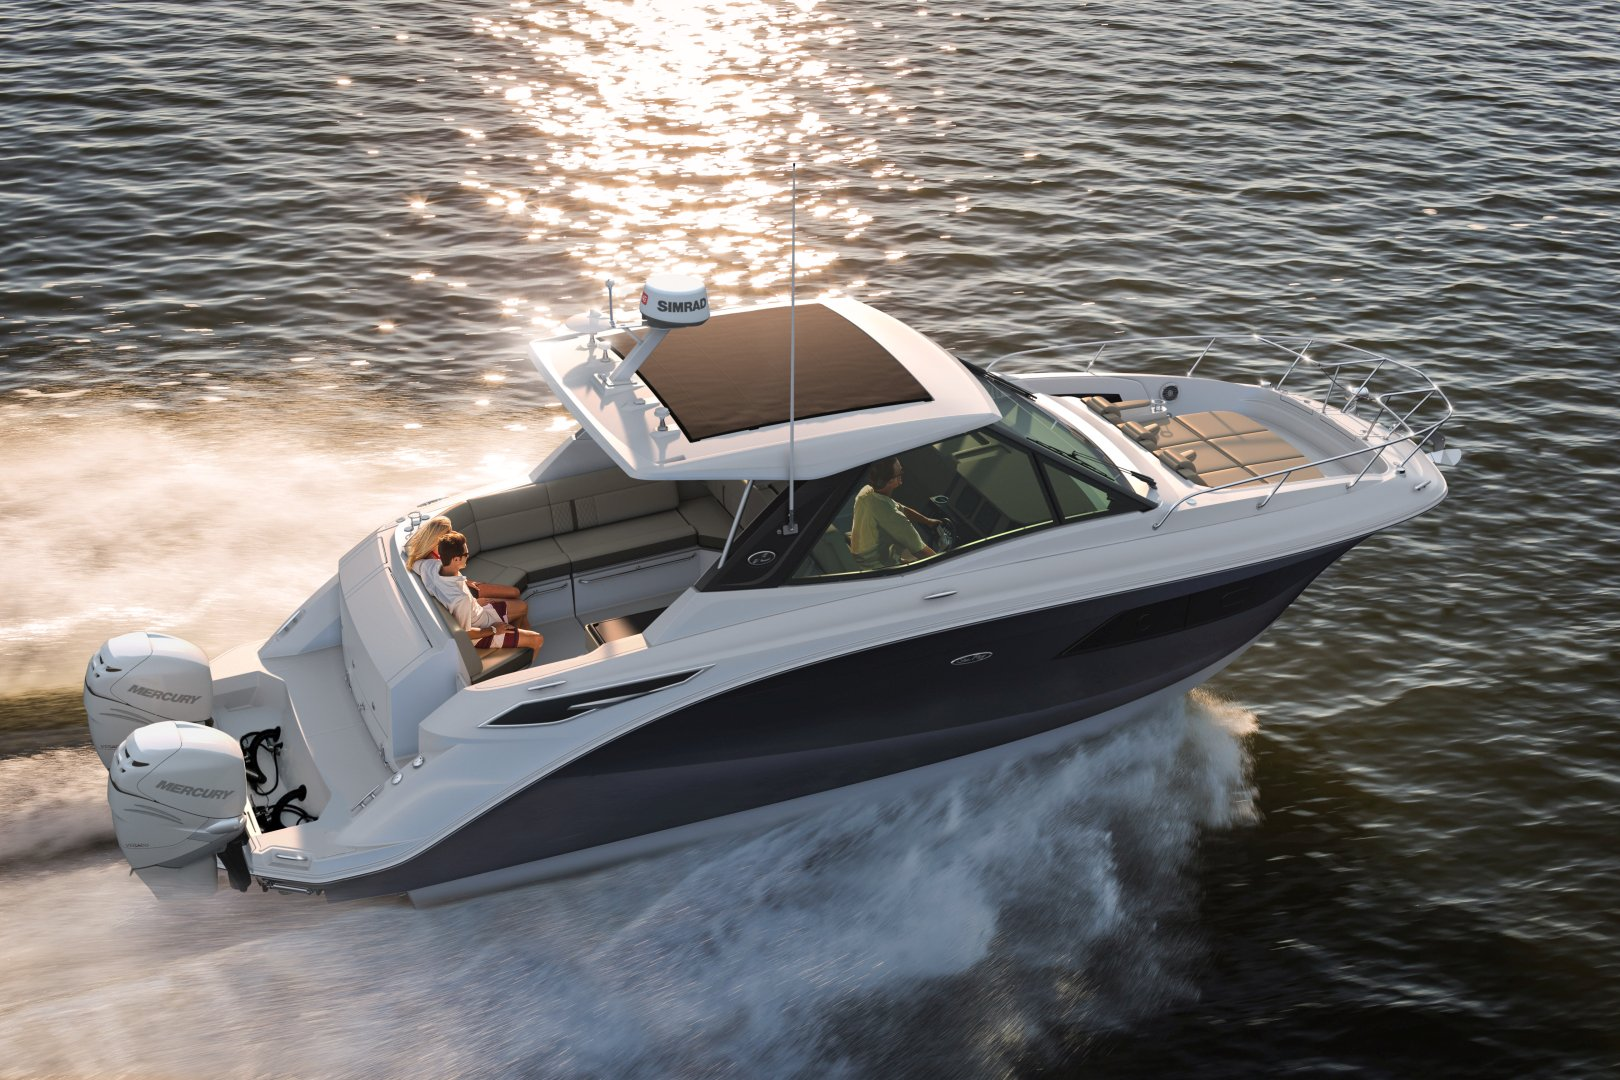 360 VR Virtual Tours of the Sea Ray Sundancer 320 Coupe – VRCLOUD